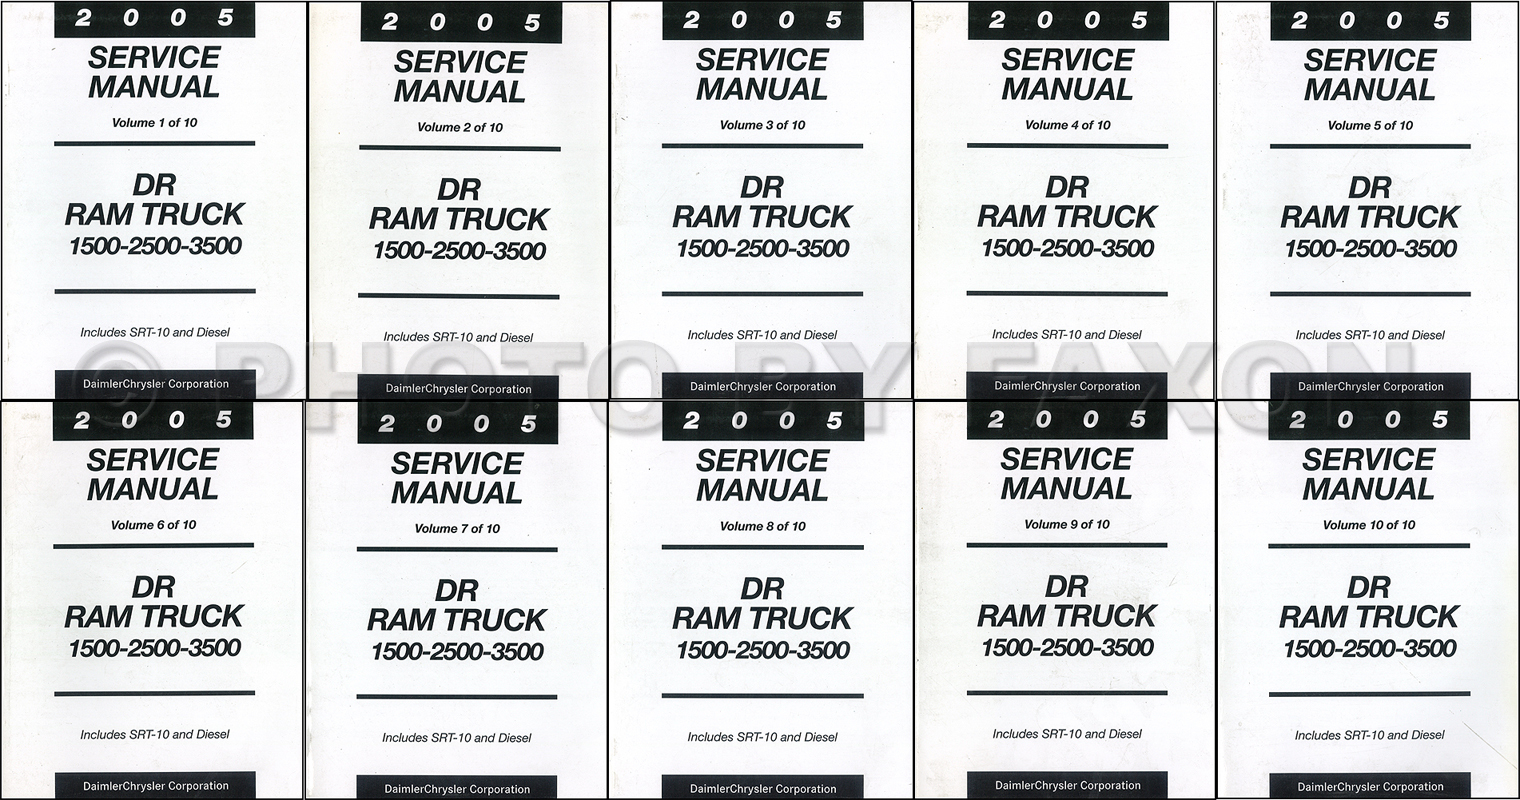 2005 Dodge Ram 2500 Wiring Diagram | Manual E-Books - 2005 Dodge Ram 1500 Trailer Wiring Diagram